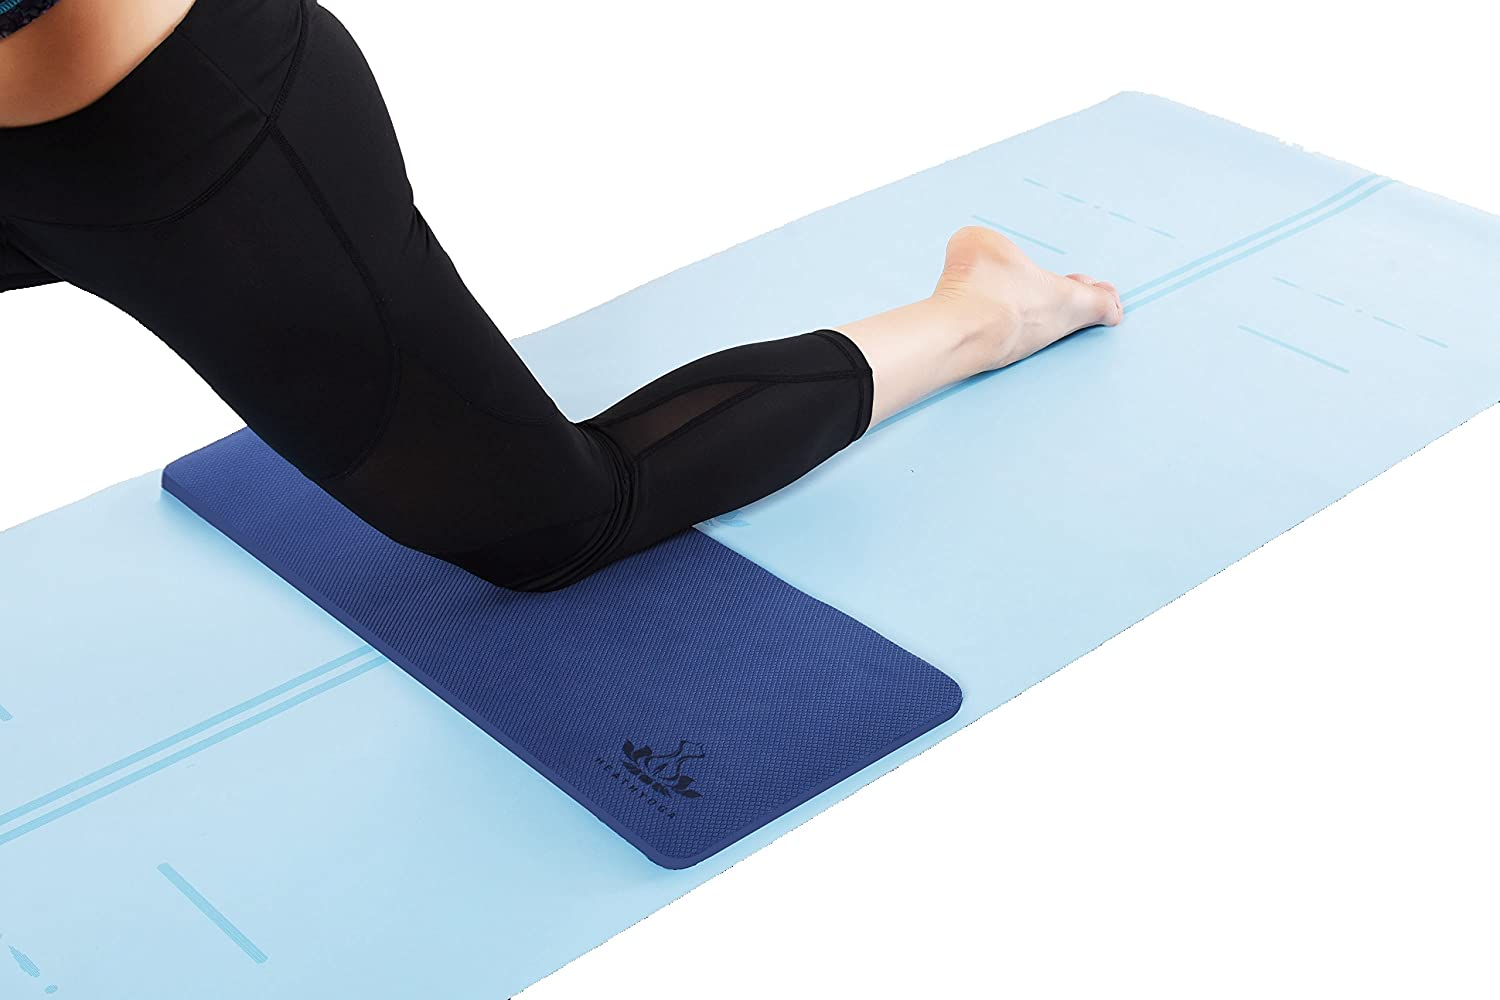 Heathyoga Yoga Knee Pad, Great for Knees and Elbows While Doing Yoga and Floor Exercises, Kneeling Pad for Gardening, Yard Work and Baby Bath. ...